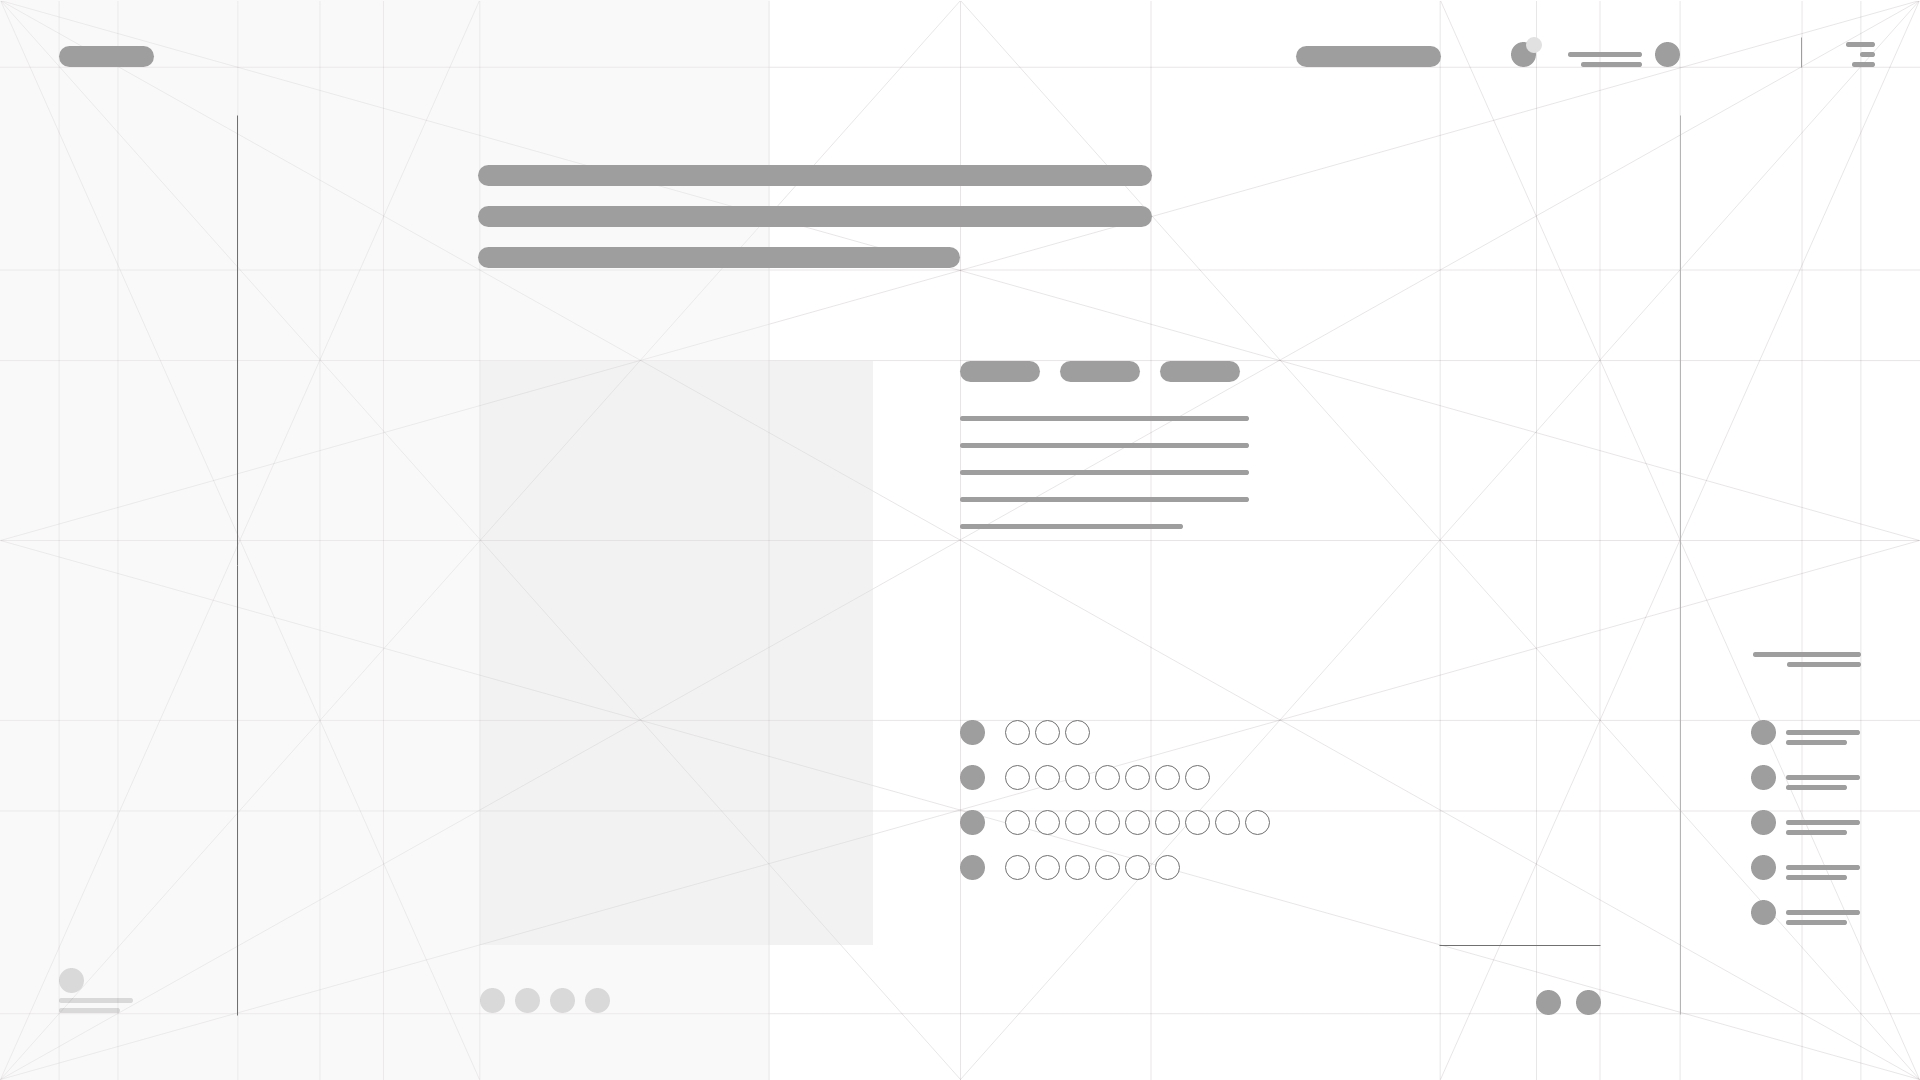 MagicDeck Canon Grid Wireframe Exemple